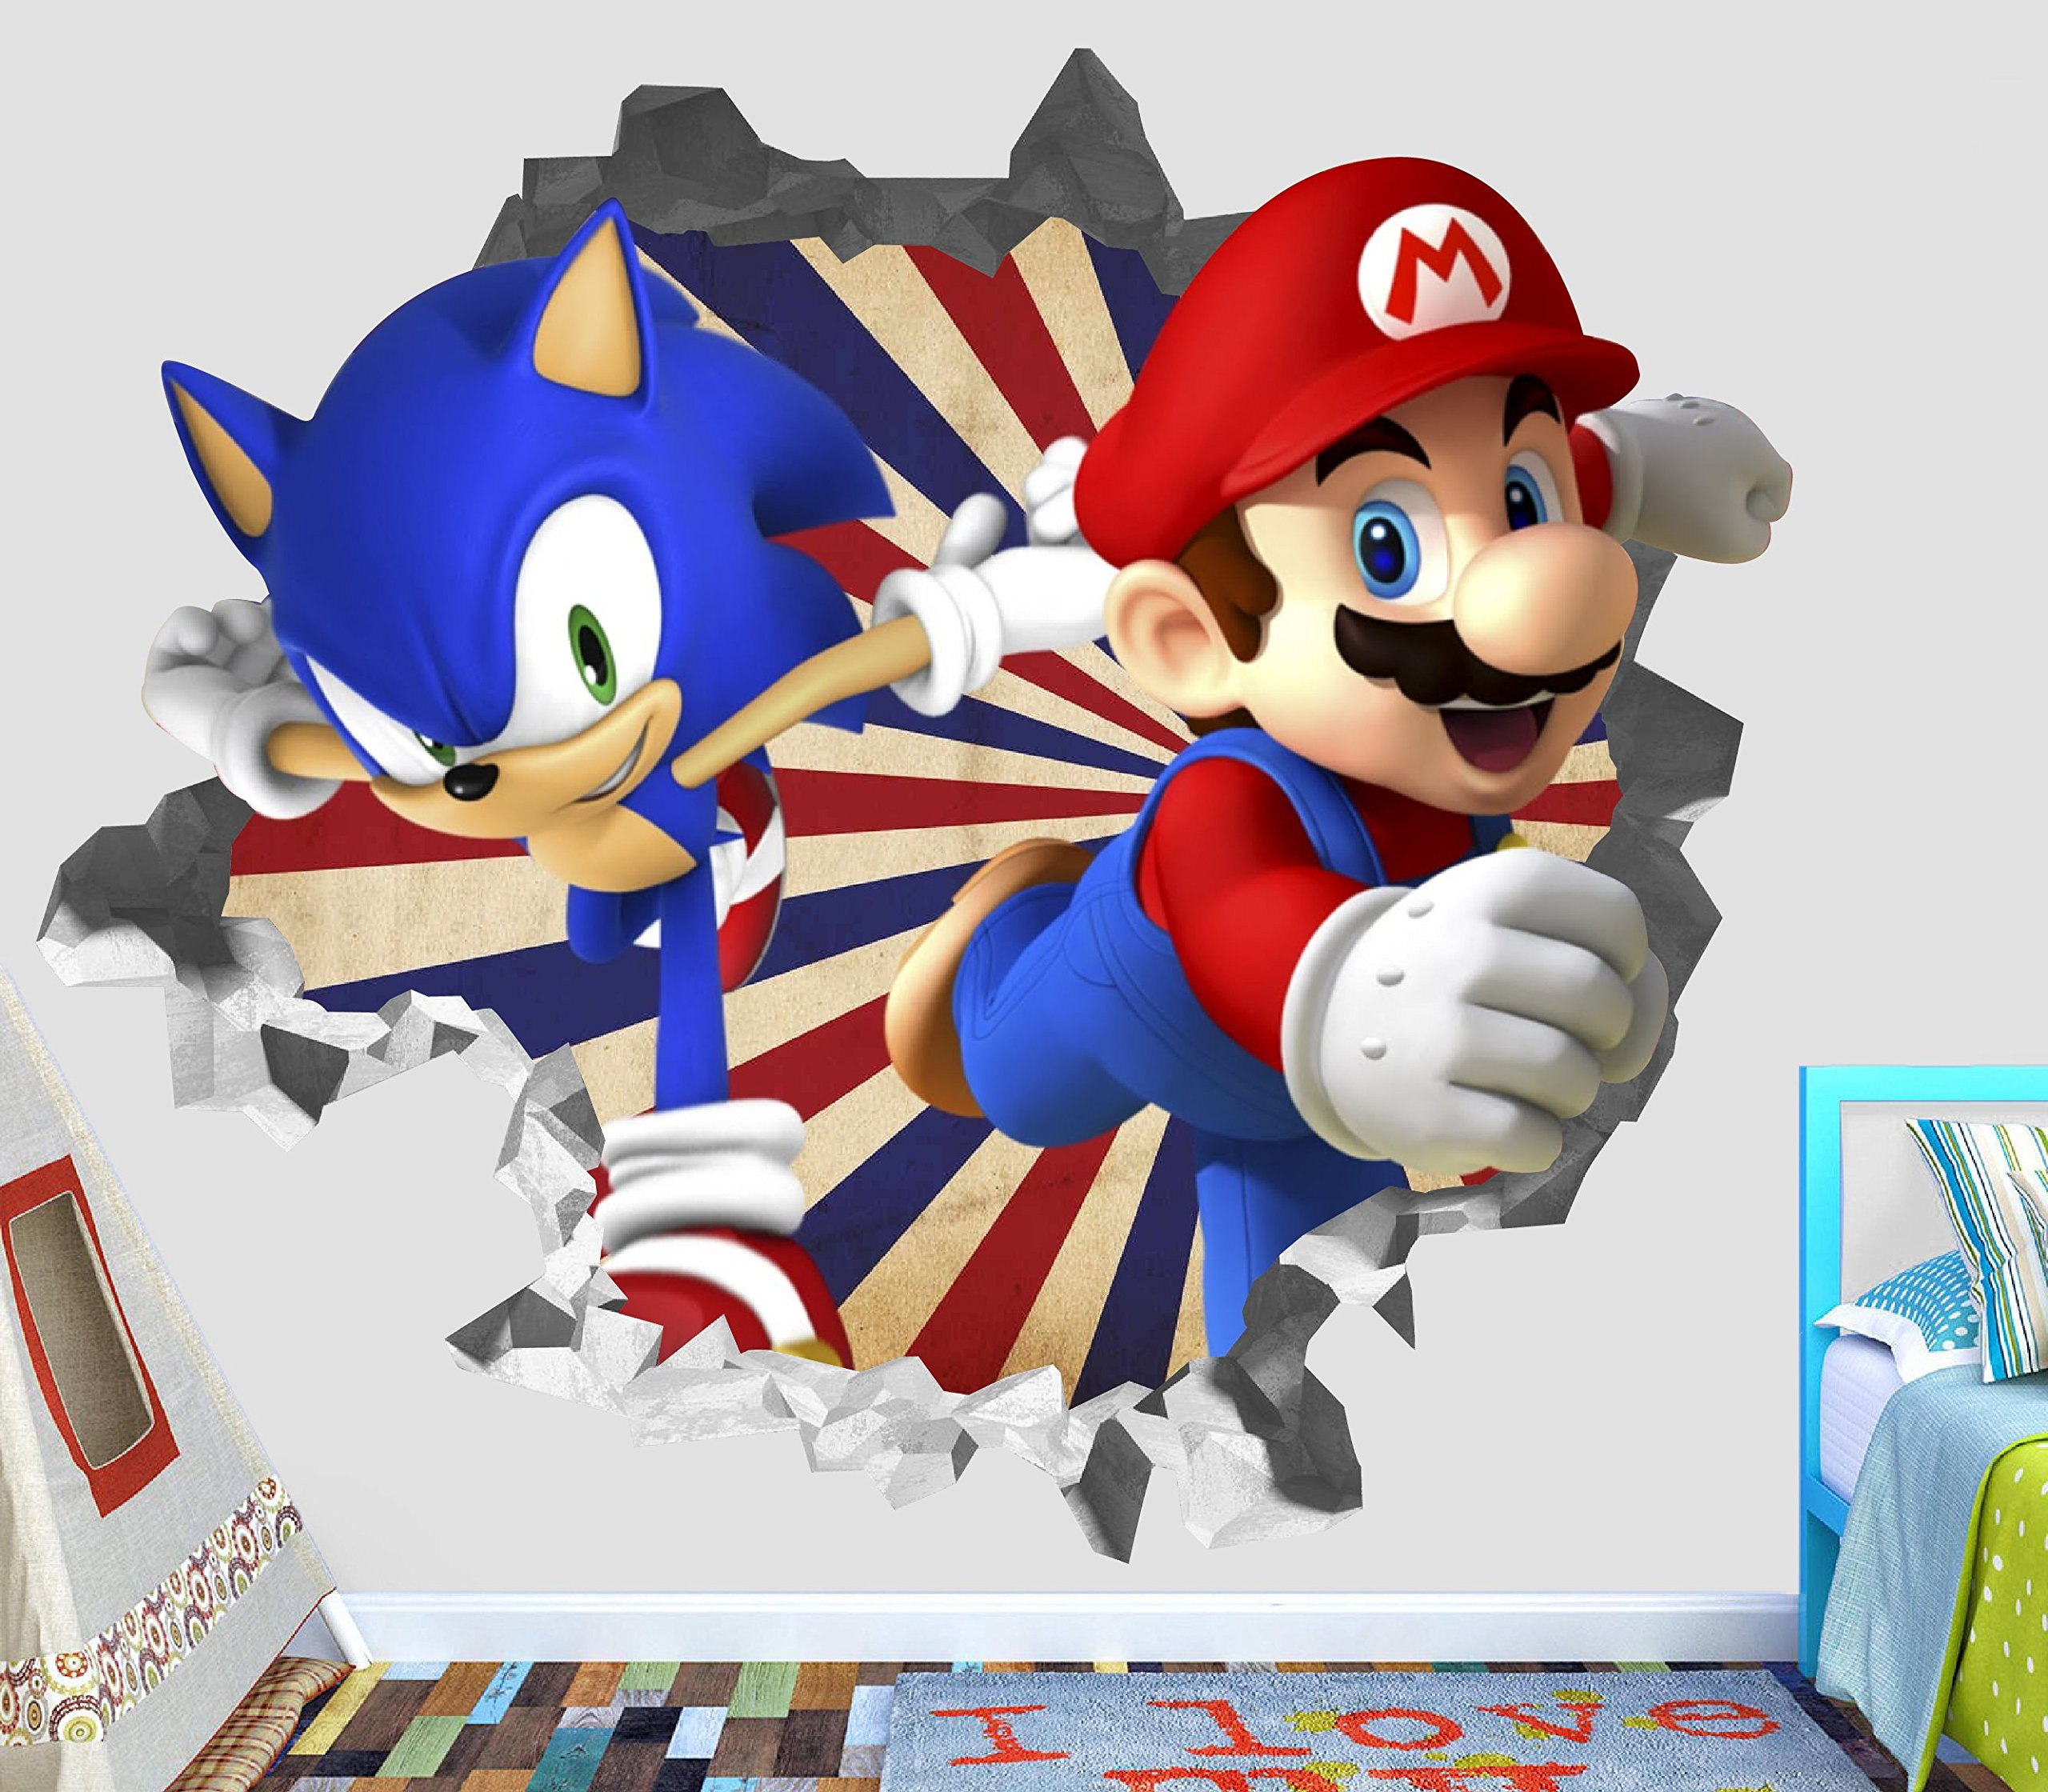 Sonic Mario Olympic Wall Decal Smashed 3D Sticker Vinyl Decor Mural Games - Broken Wall - 3D Designs - OP421 (Giant (Wide 50'' x 46'' Height))